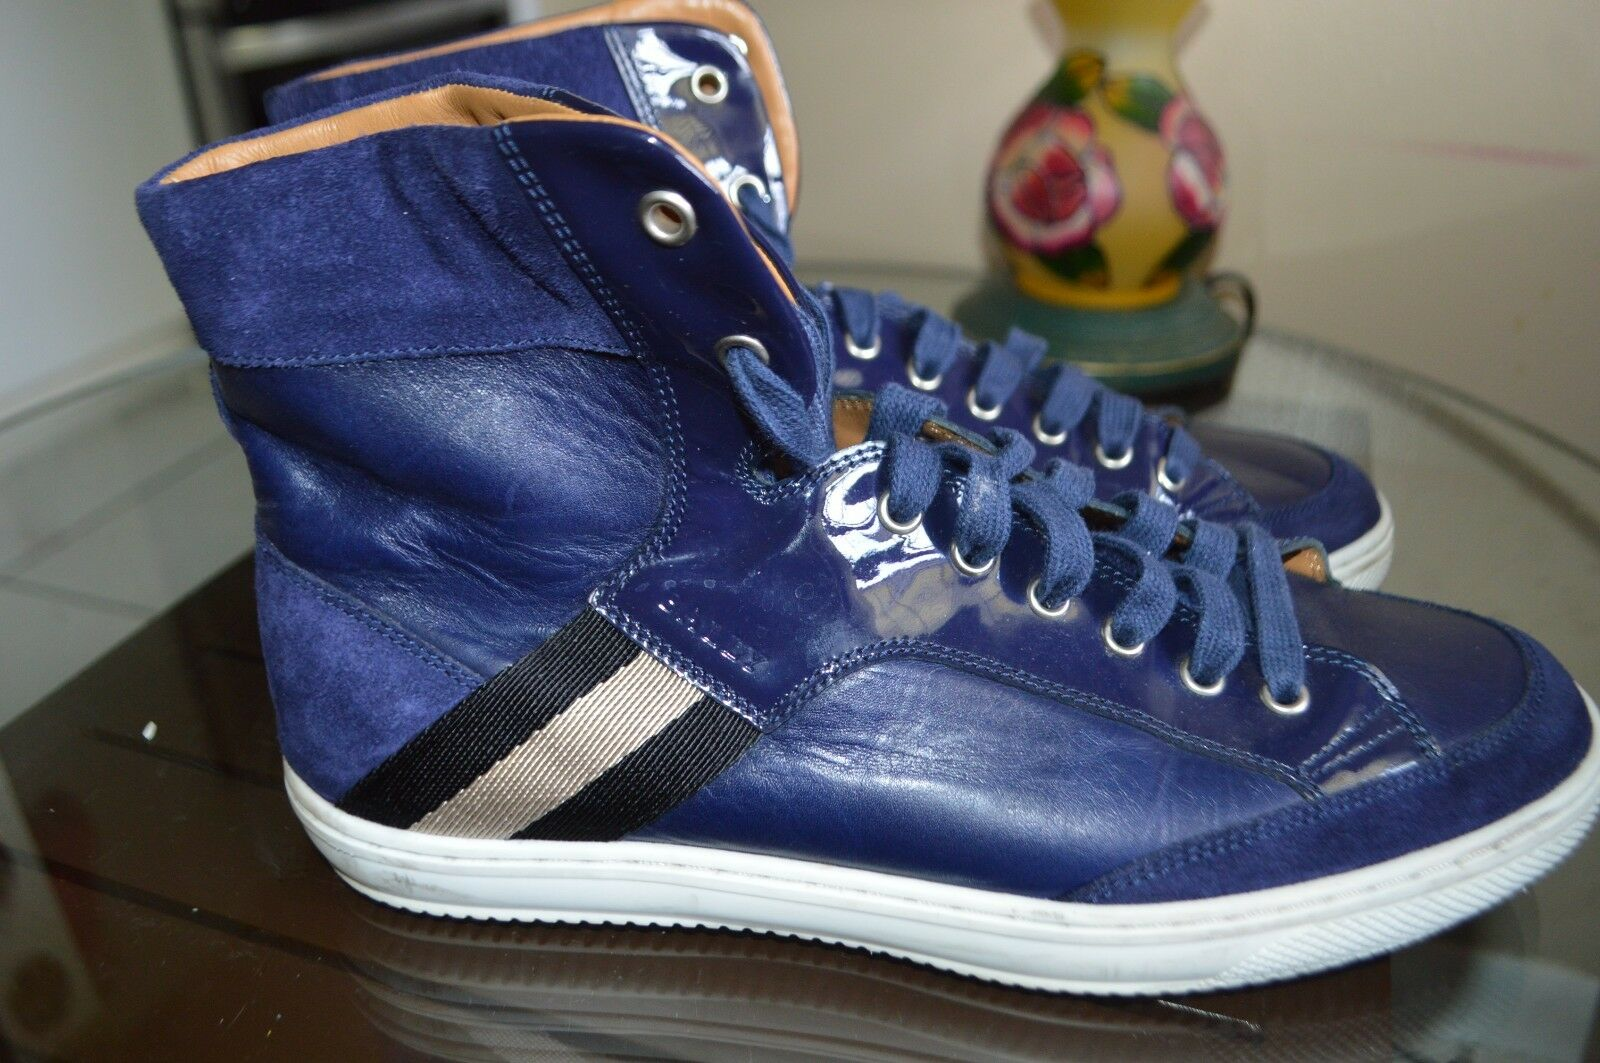 BALLY MAN SHOES SNEAKERS HIGH TOP OLDANI 146 blueE ALL LEATHER US 8D